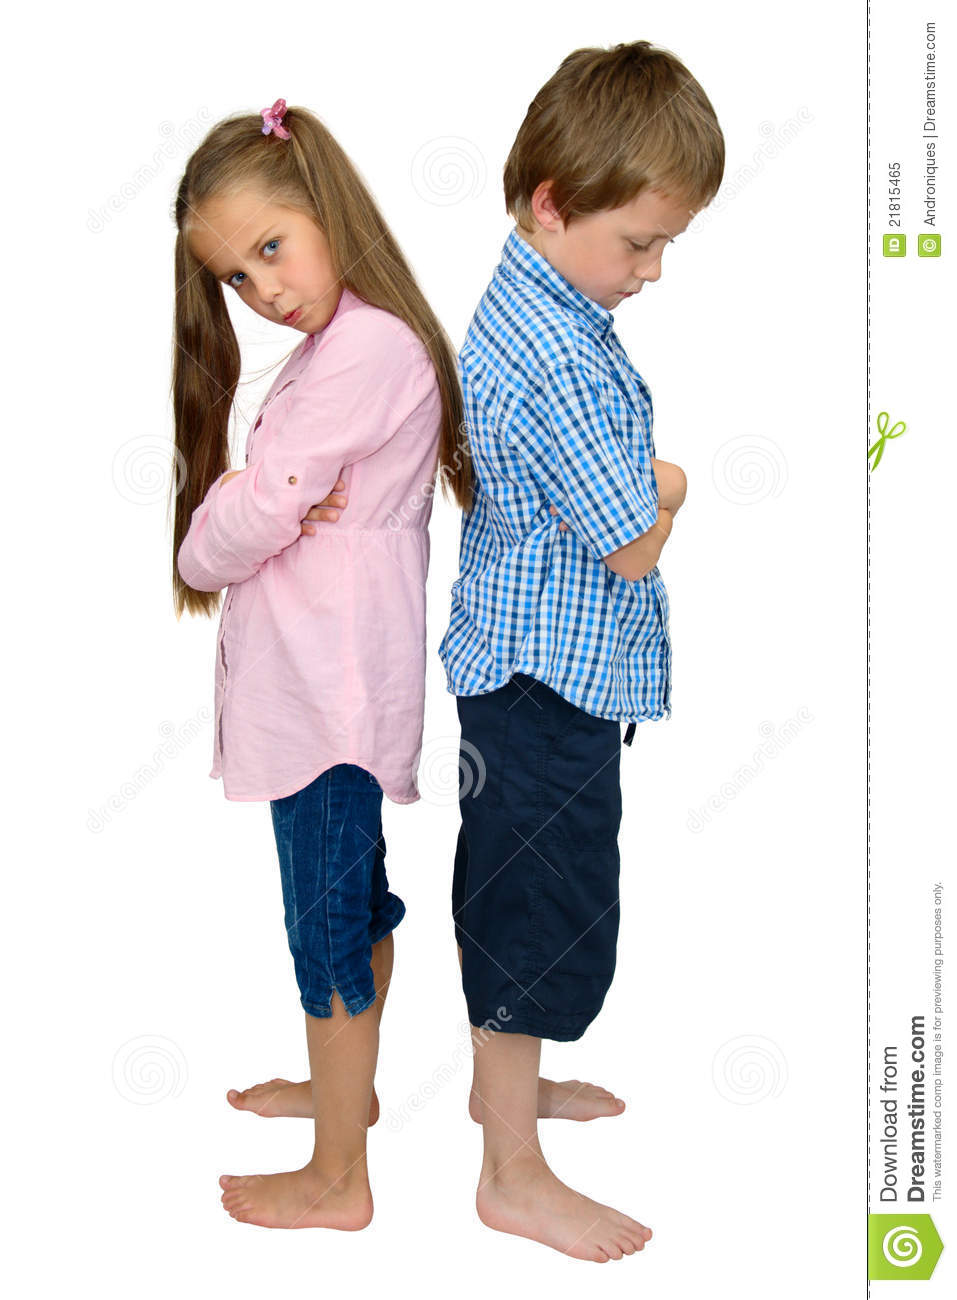 Boy And Girl Bedroom Decor: Sad Boy And Girl Punished After Argument, On White Royalty